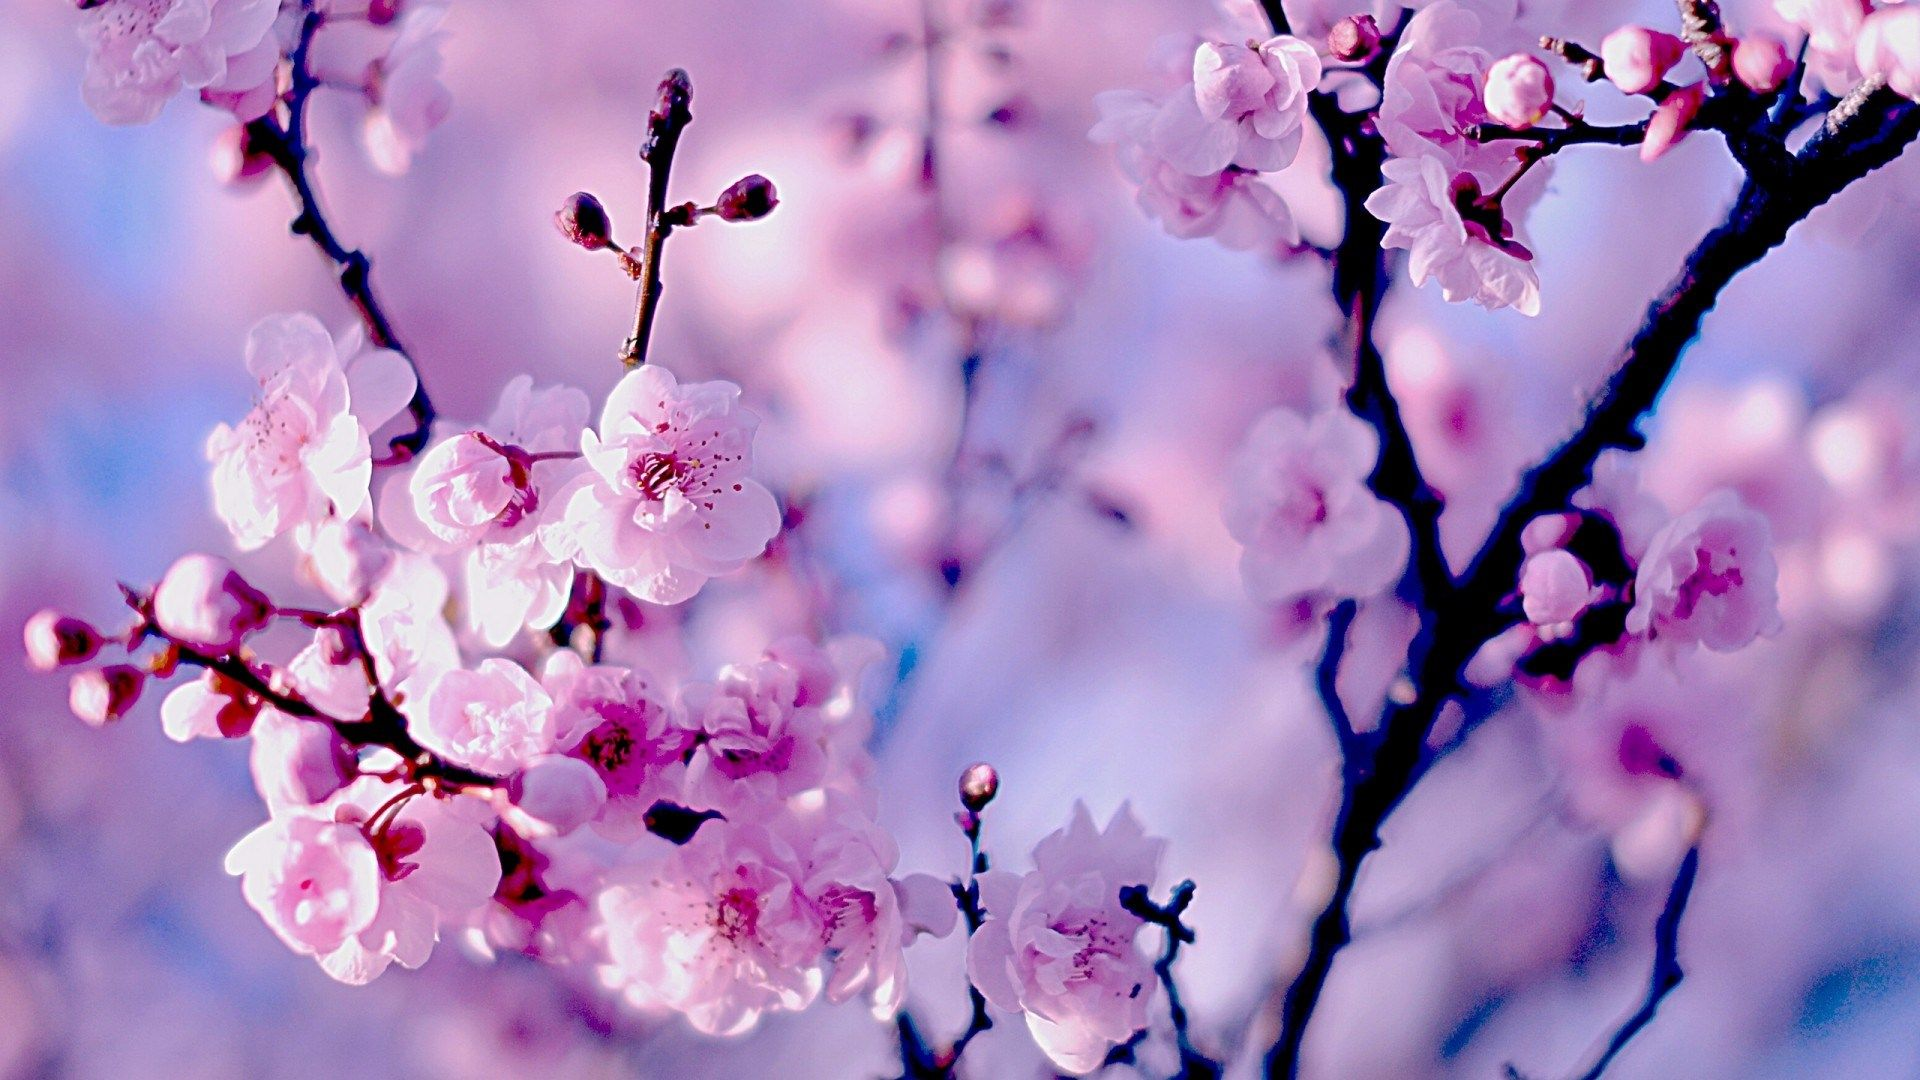 Cherry Blossom Free Computer Wallpaper Download Cherry Blossom Wallpaper Cherry Blossom Background Computer Wallpaper